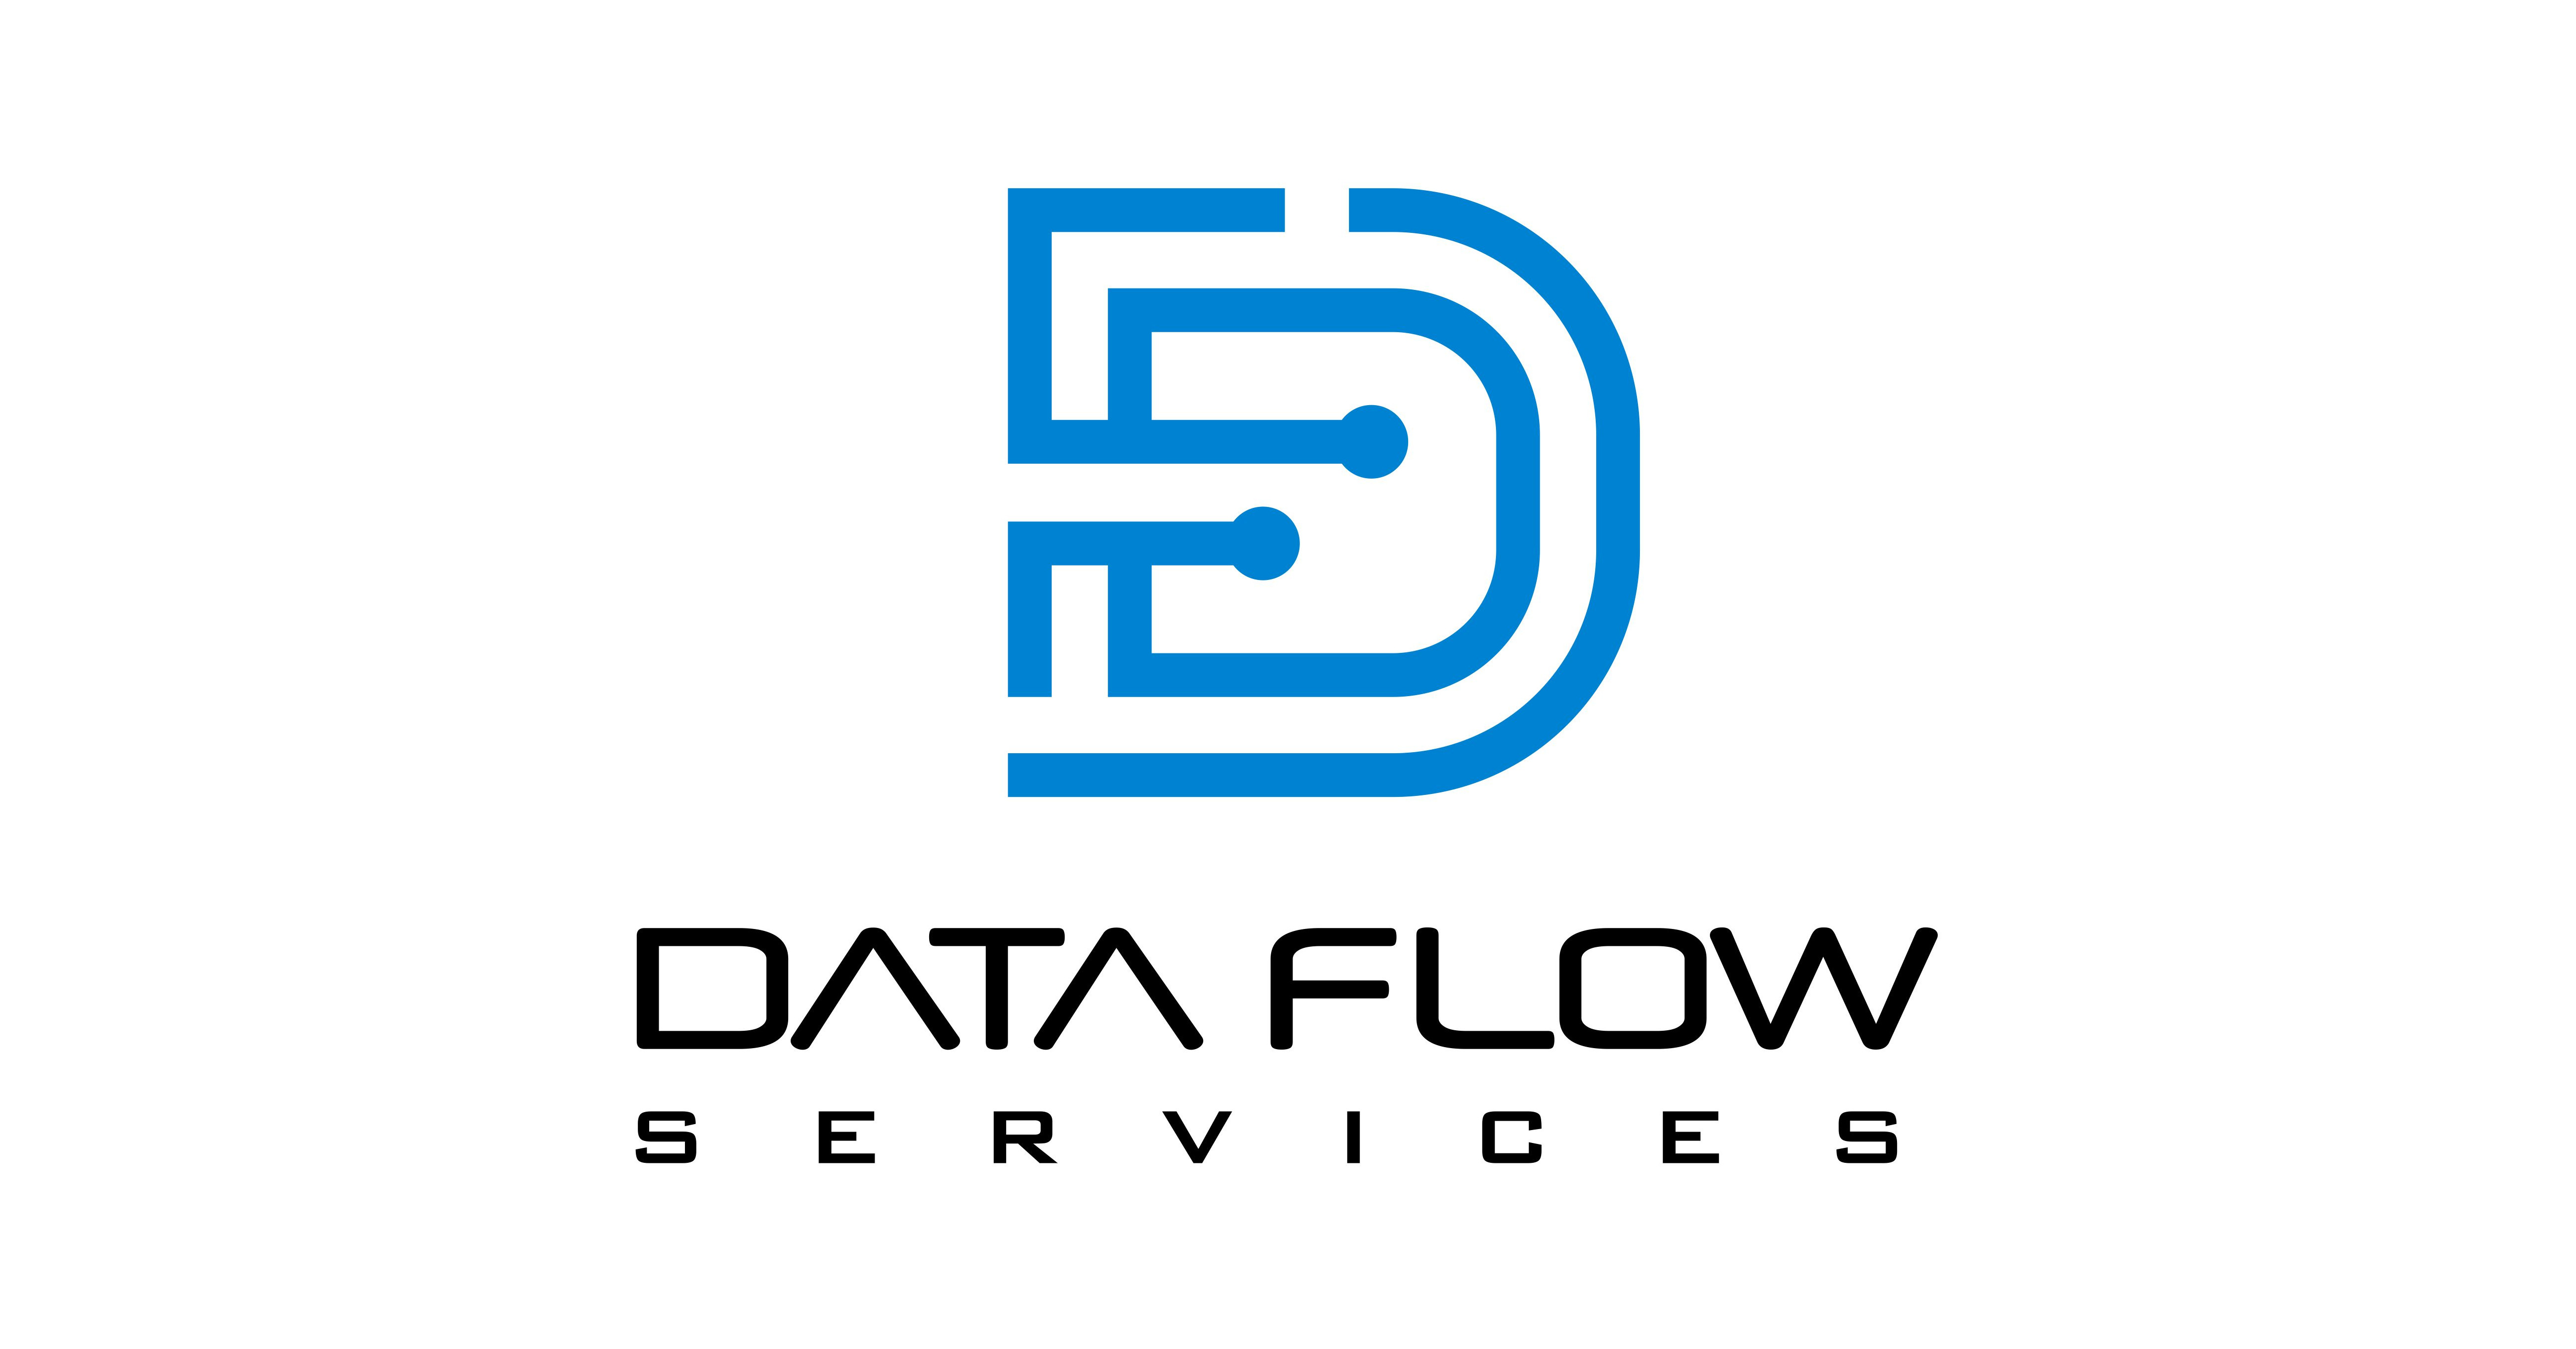 Job: Help Desk Analyst at Data Flow Services in Giza, Egypt